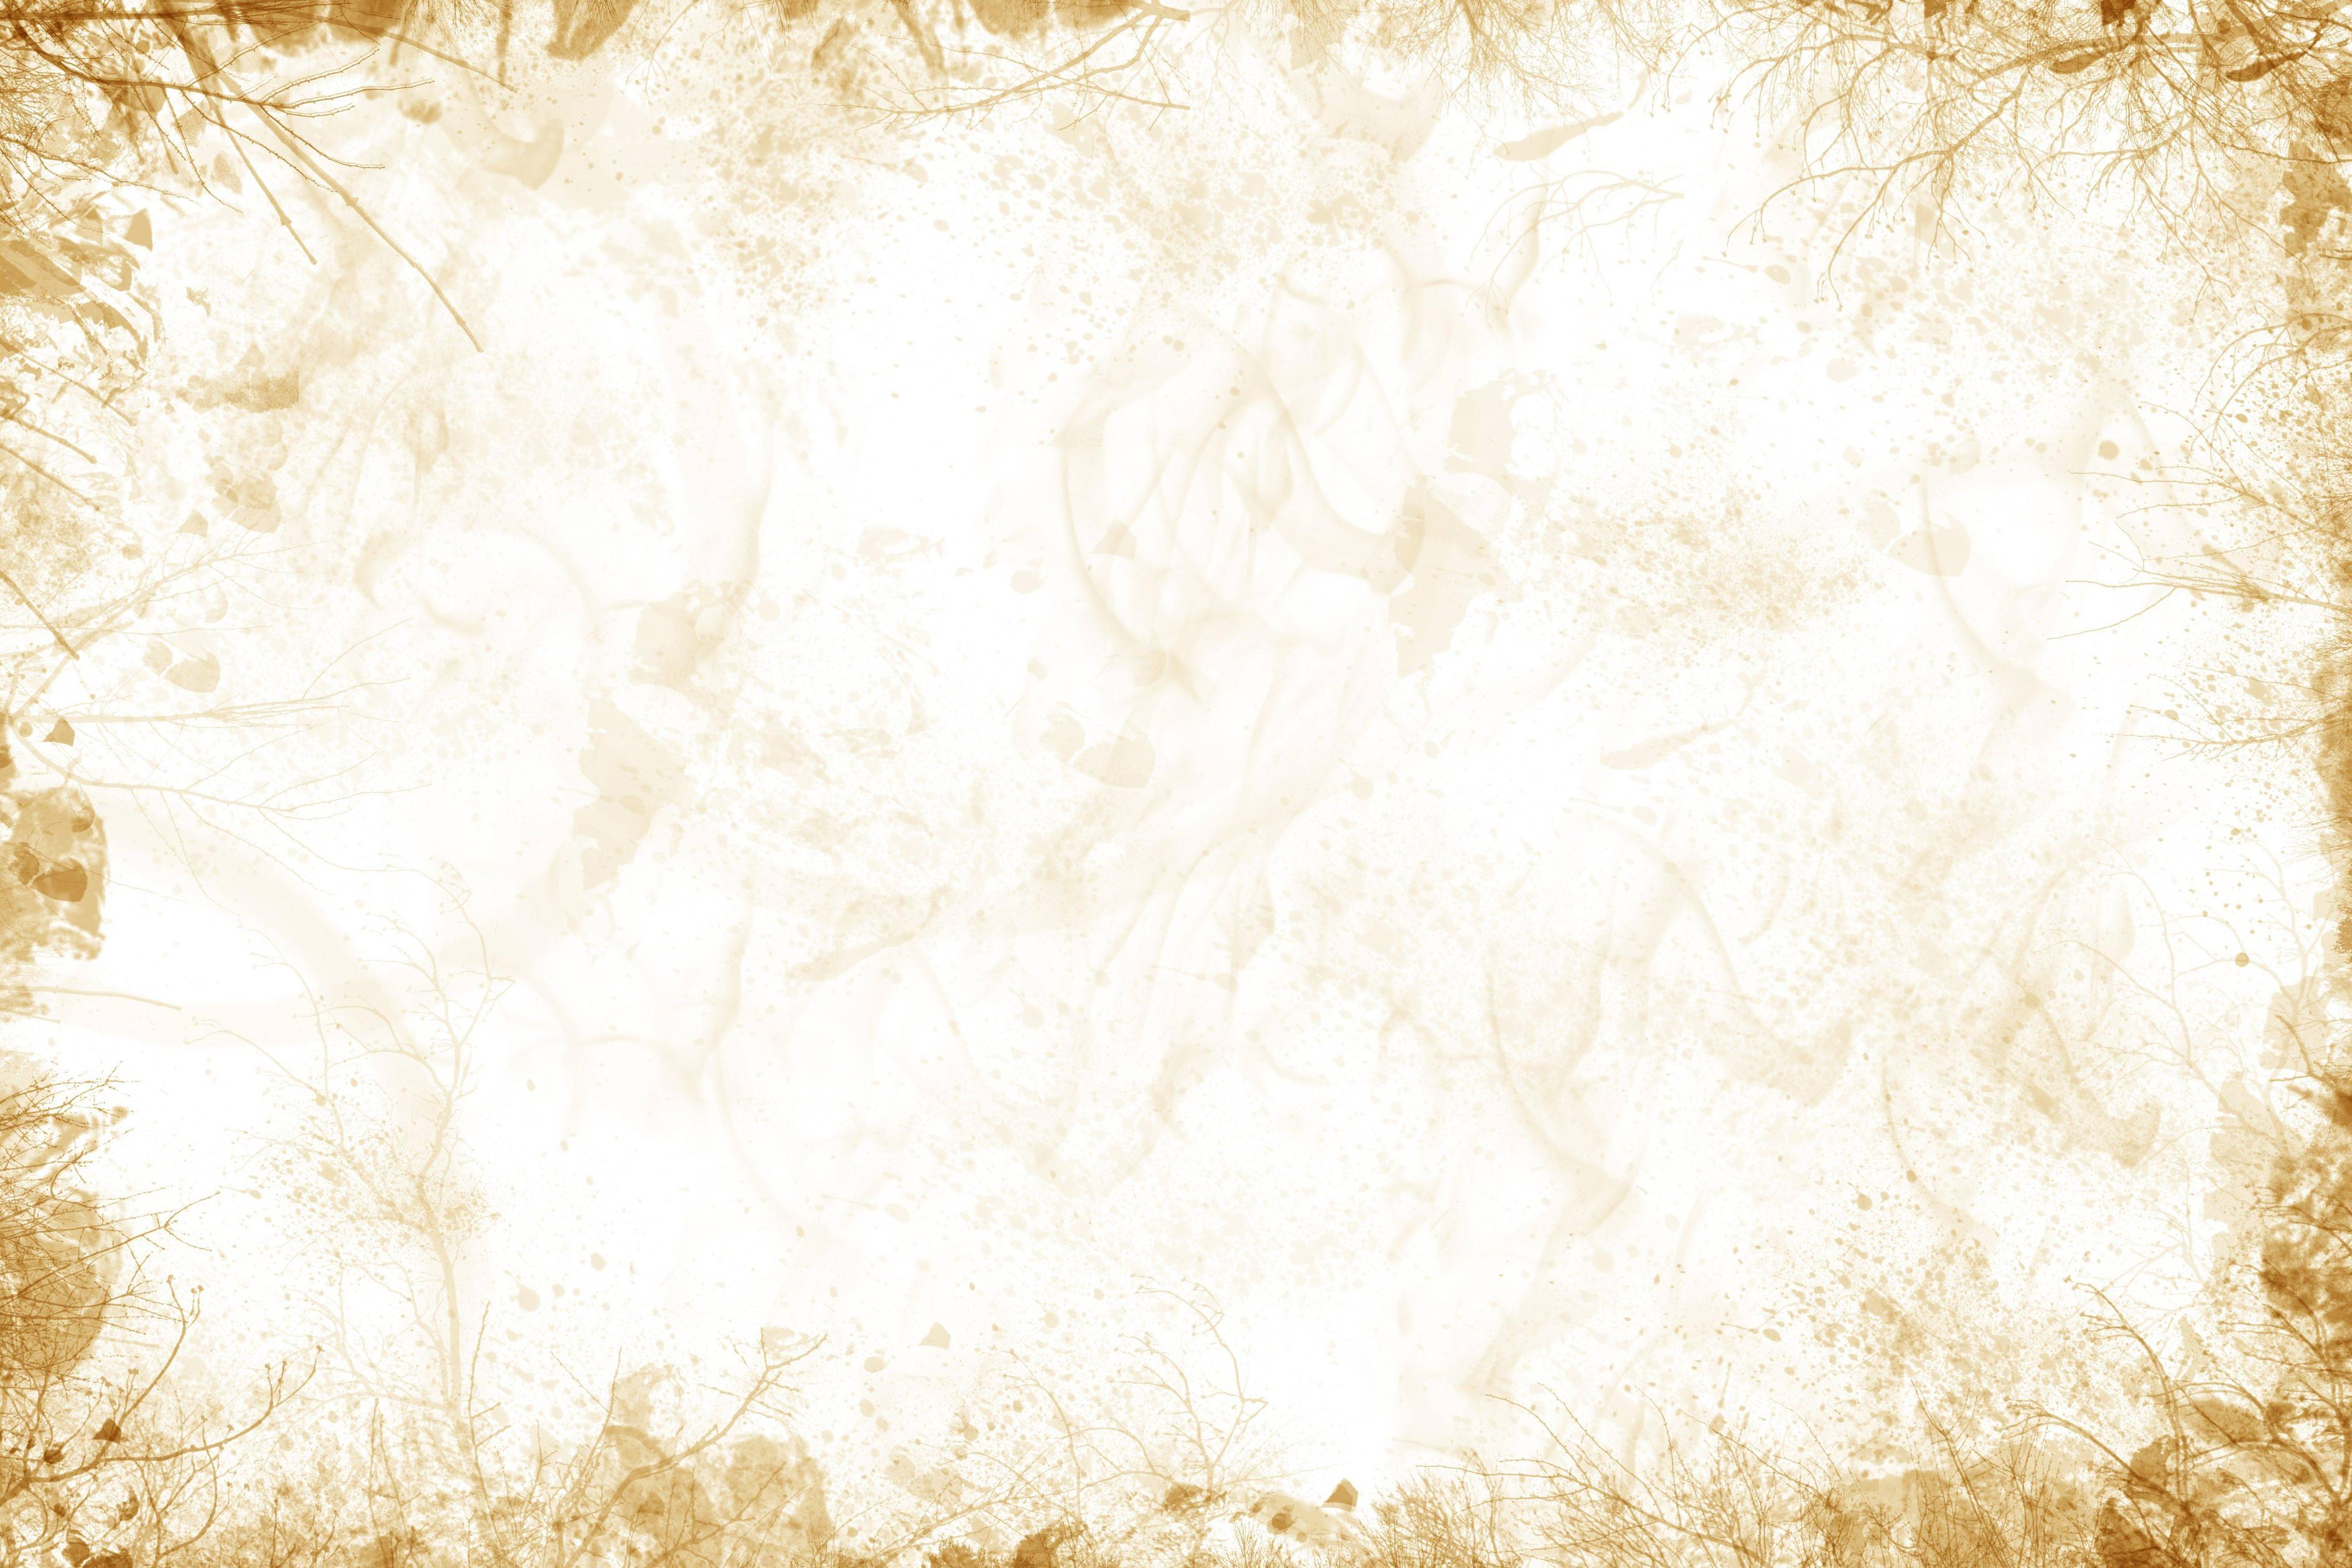 Funeral Backgrounds Pictures 3780x2520